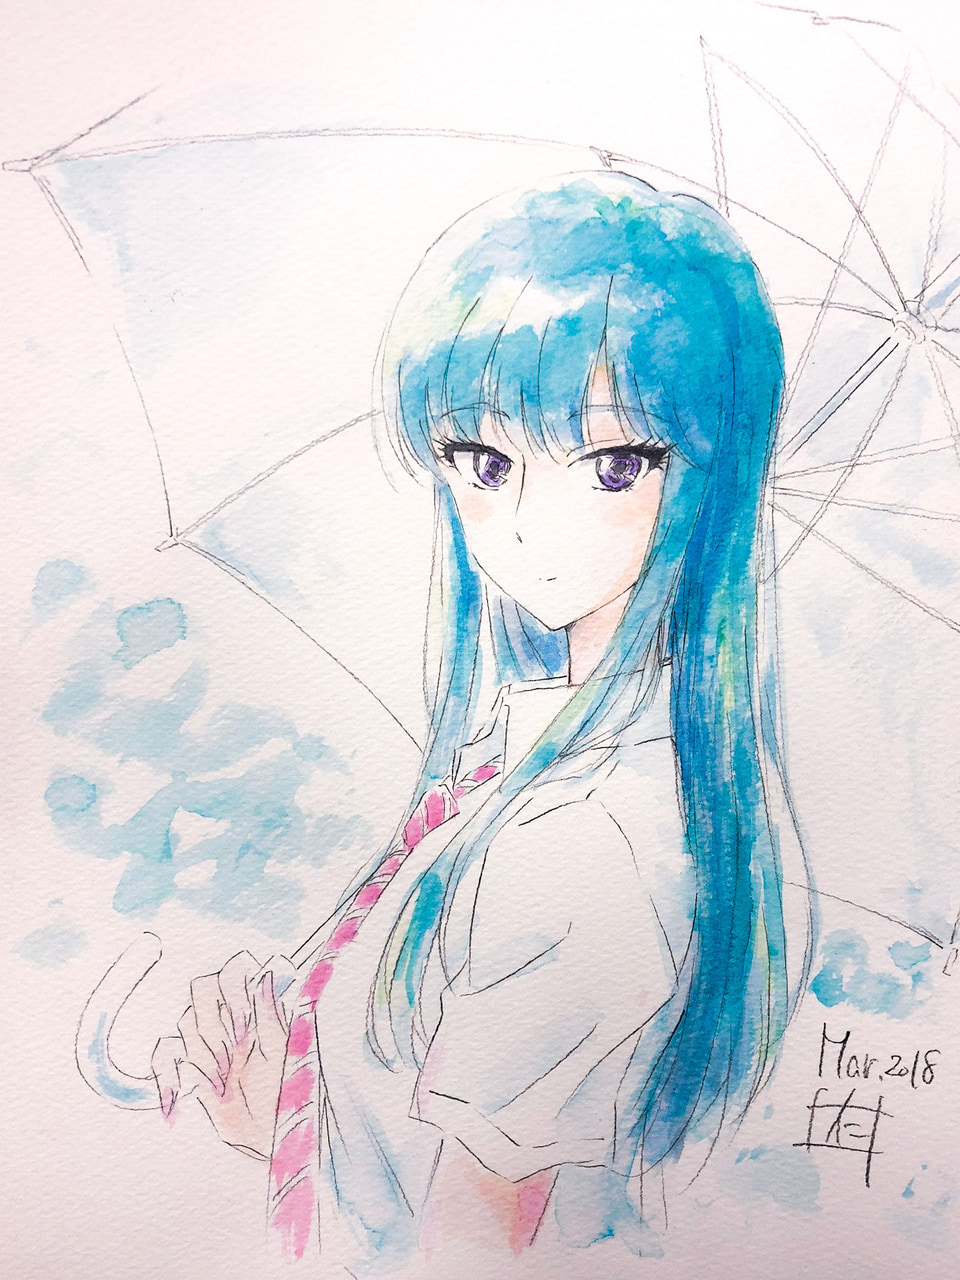 183 Images About Koi Wa Ameagari No You Ni On We Heart It See